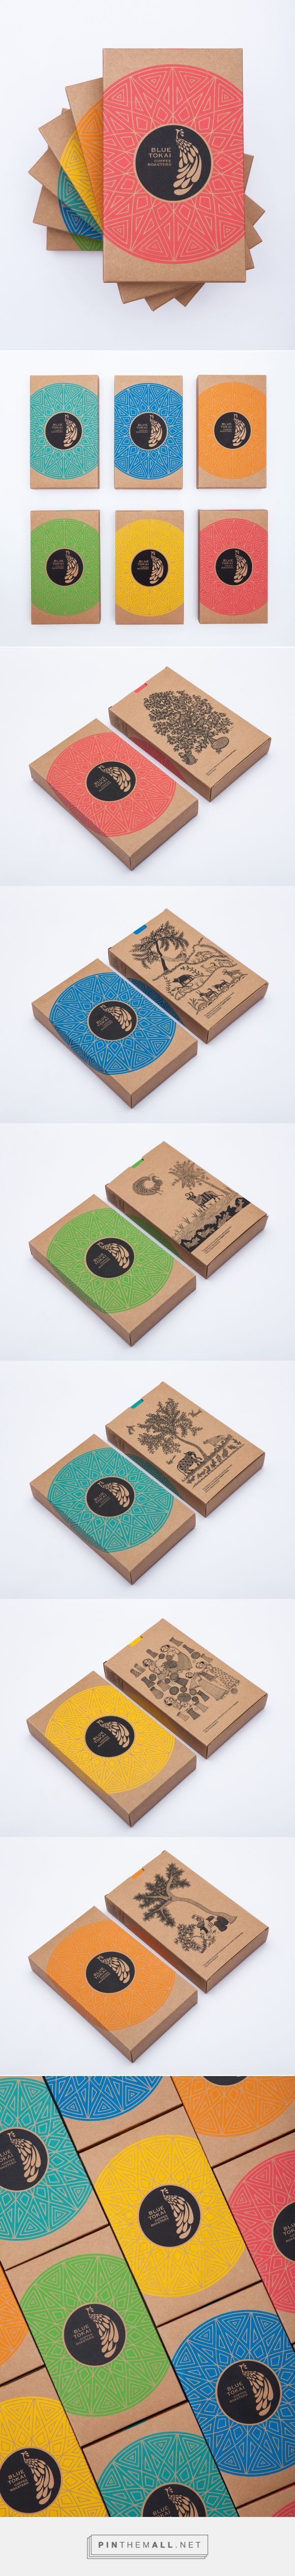 Graphic design, print design and packaging for Blue Tokai on Behance by Impprintz Graphic Design, Mumbai, India curated by Packaging Diva PD. Boxes contain the best and freshest single estate Arabica coffees from farms across India.